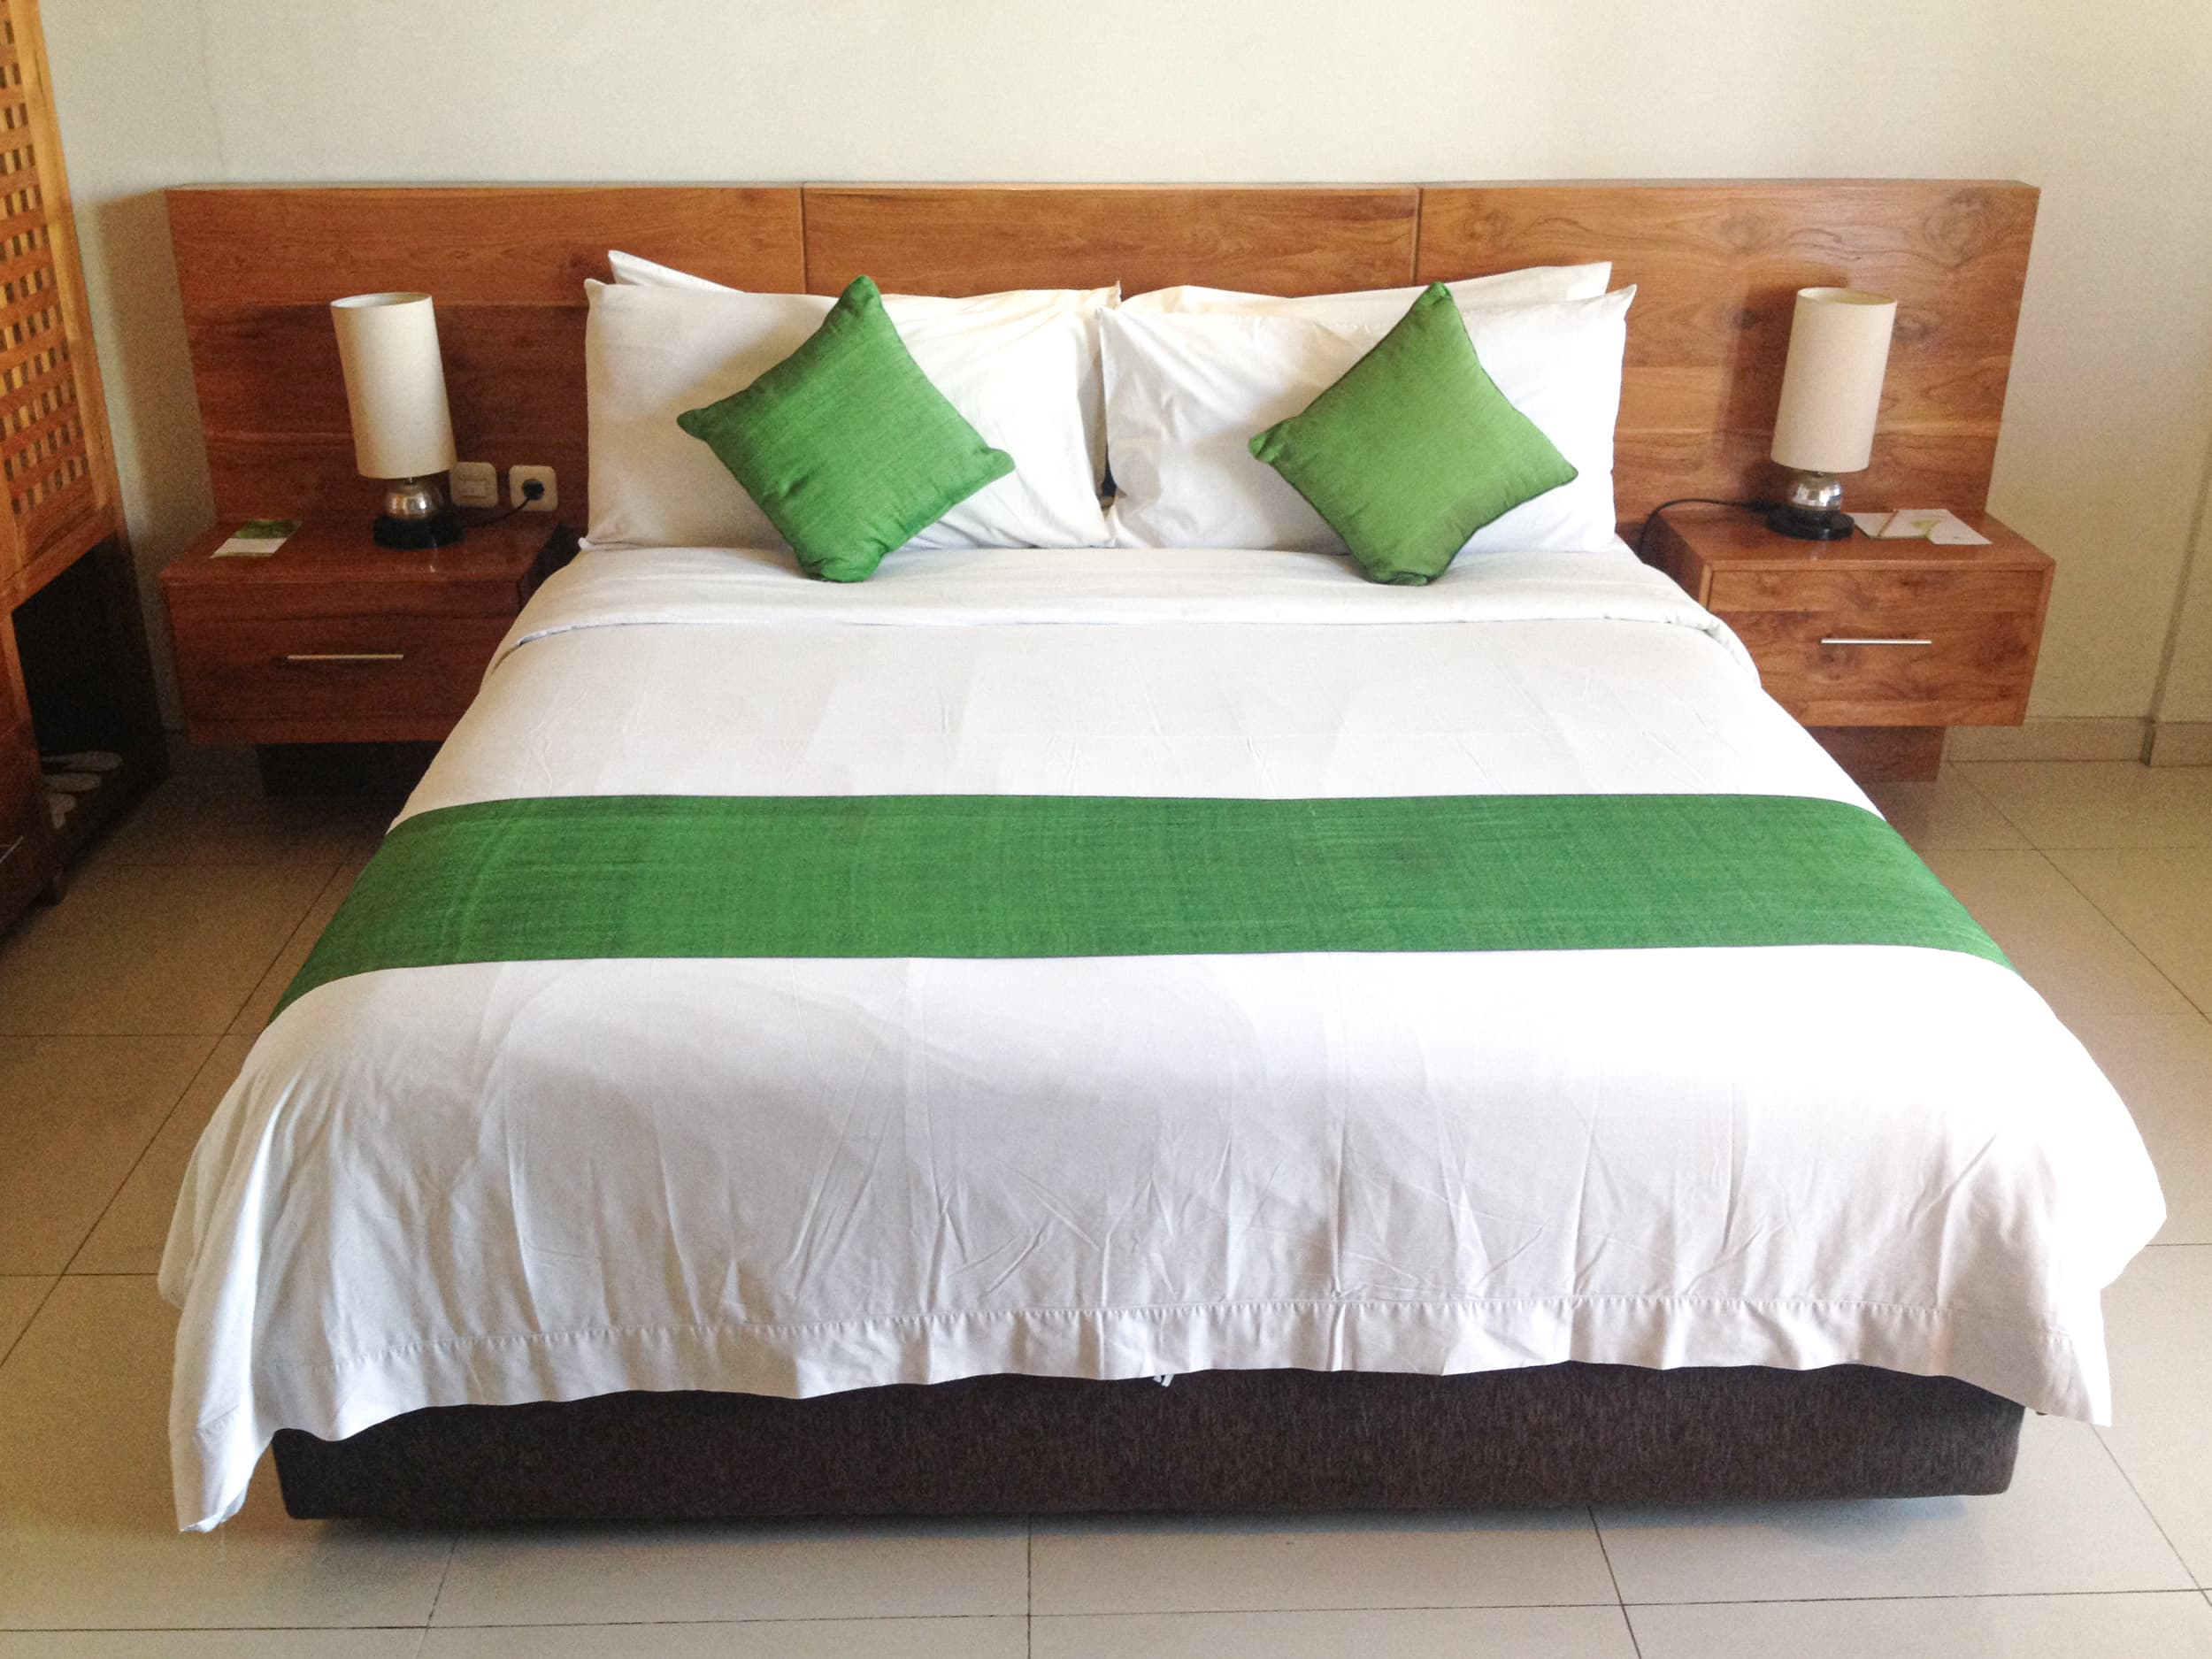 Hotel bed in Bali